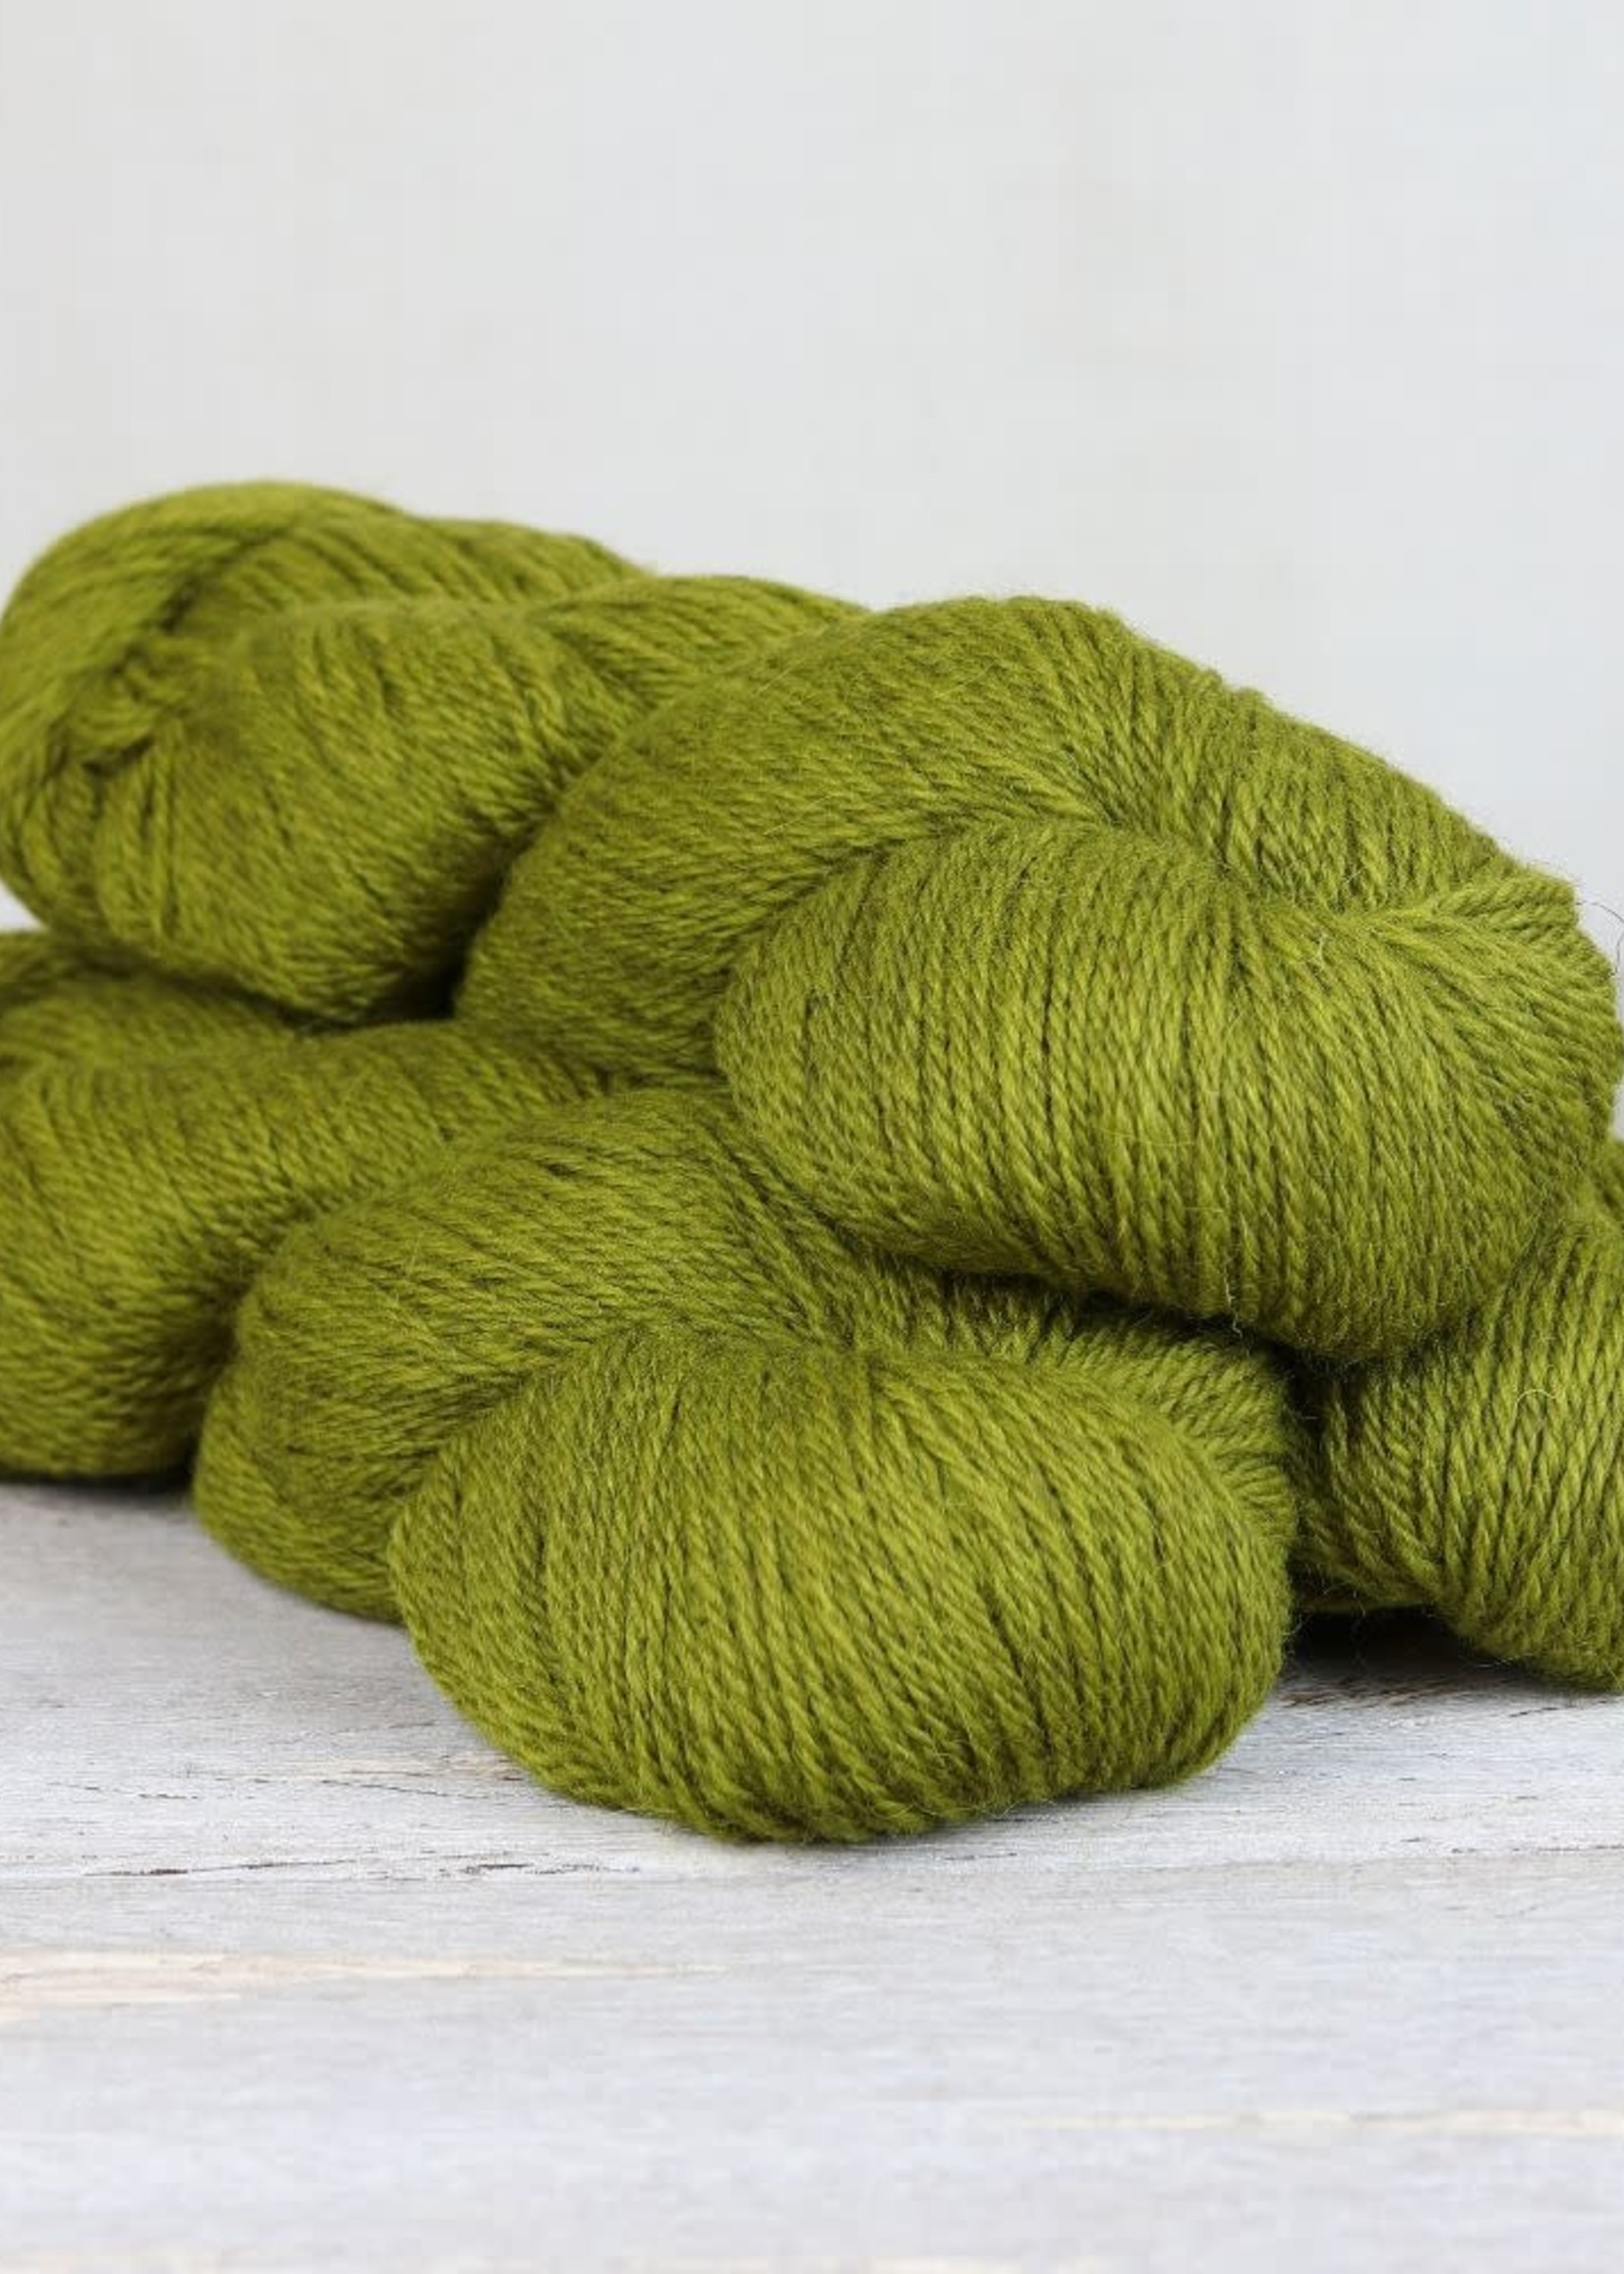 The Fibre Co The Fibre Co. Cumbria Worsted #016 Helvellyn